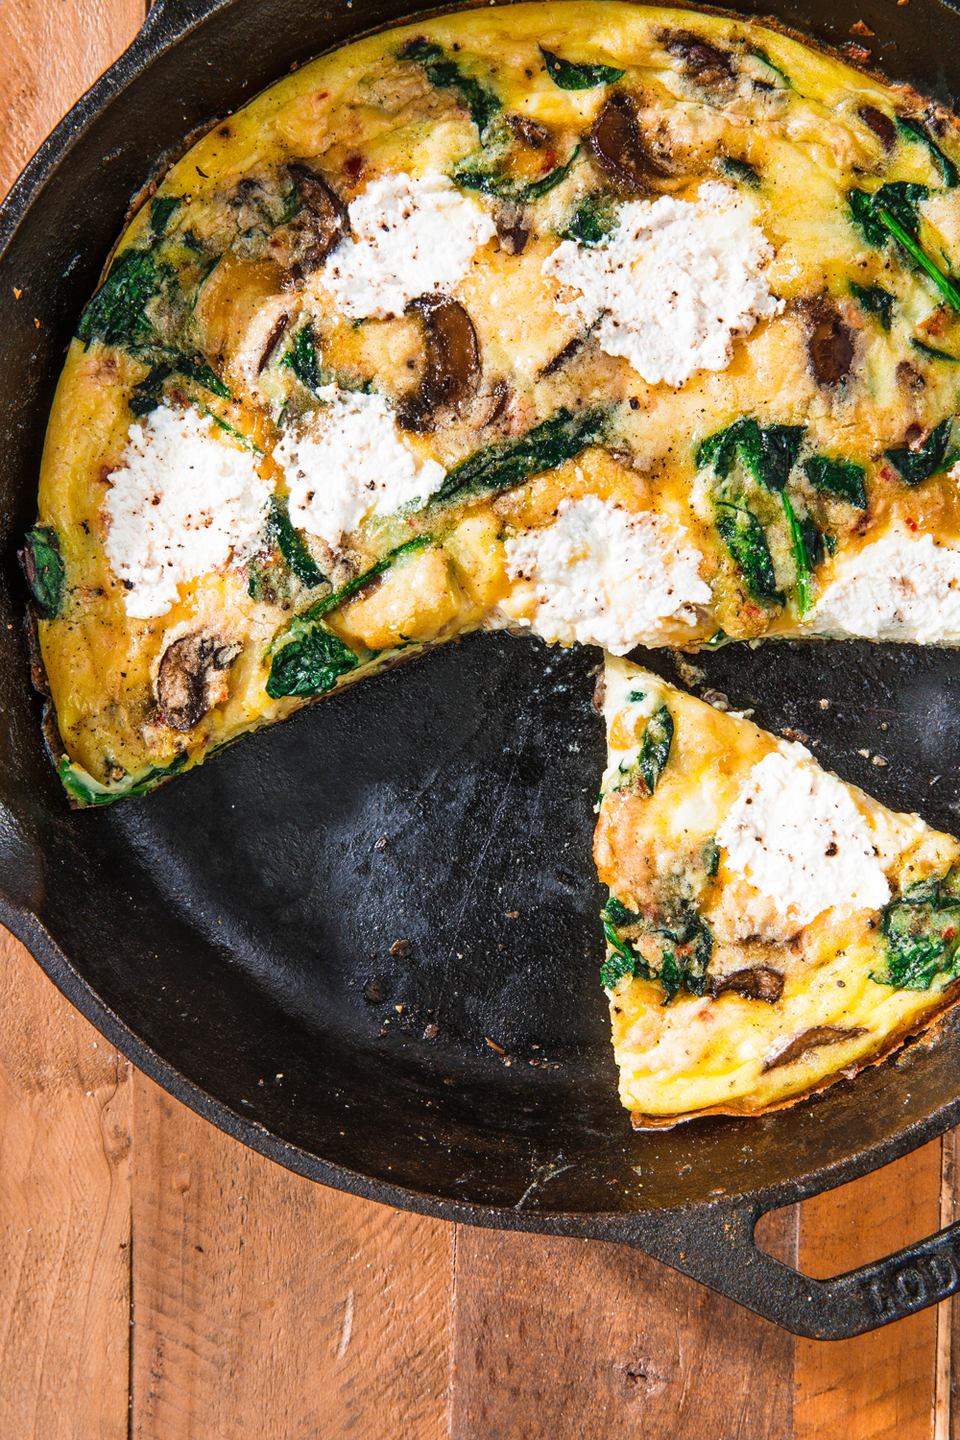 """<p>Your options are endless here!</p><p>Get the recipe from <a href=""""https://www.delish.com/cooking/recipe-ideas/a24229816/frittata-recipe/"""" rel=""""nofollow noopener"""" target=""""_blank"""" data-ylk=""""slk:Delish"""" class=""""link rapid-noclick-resp"""">Delish</a>. </p>"""